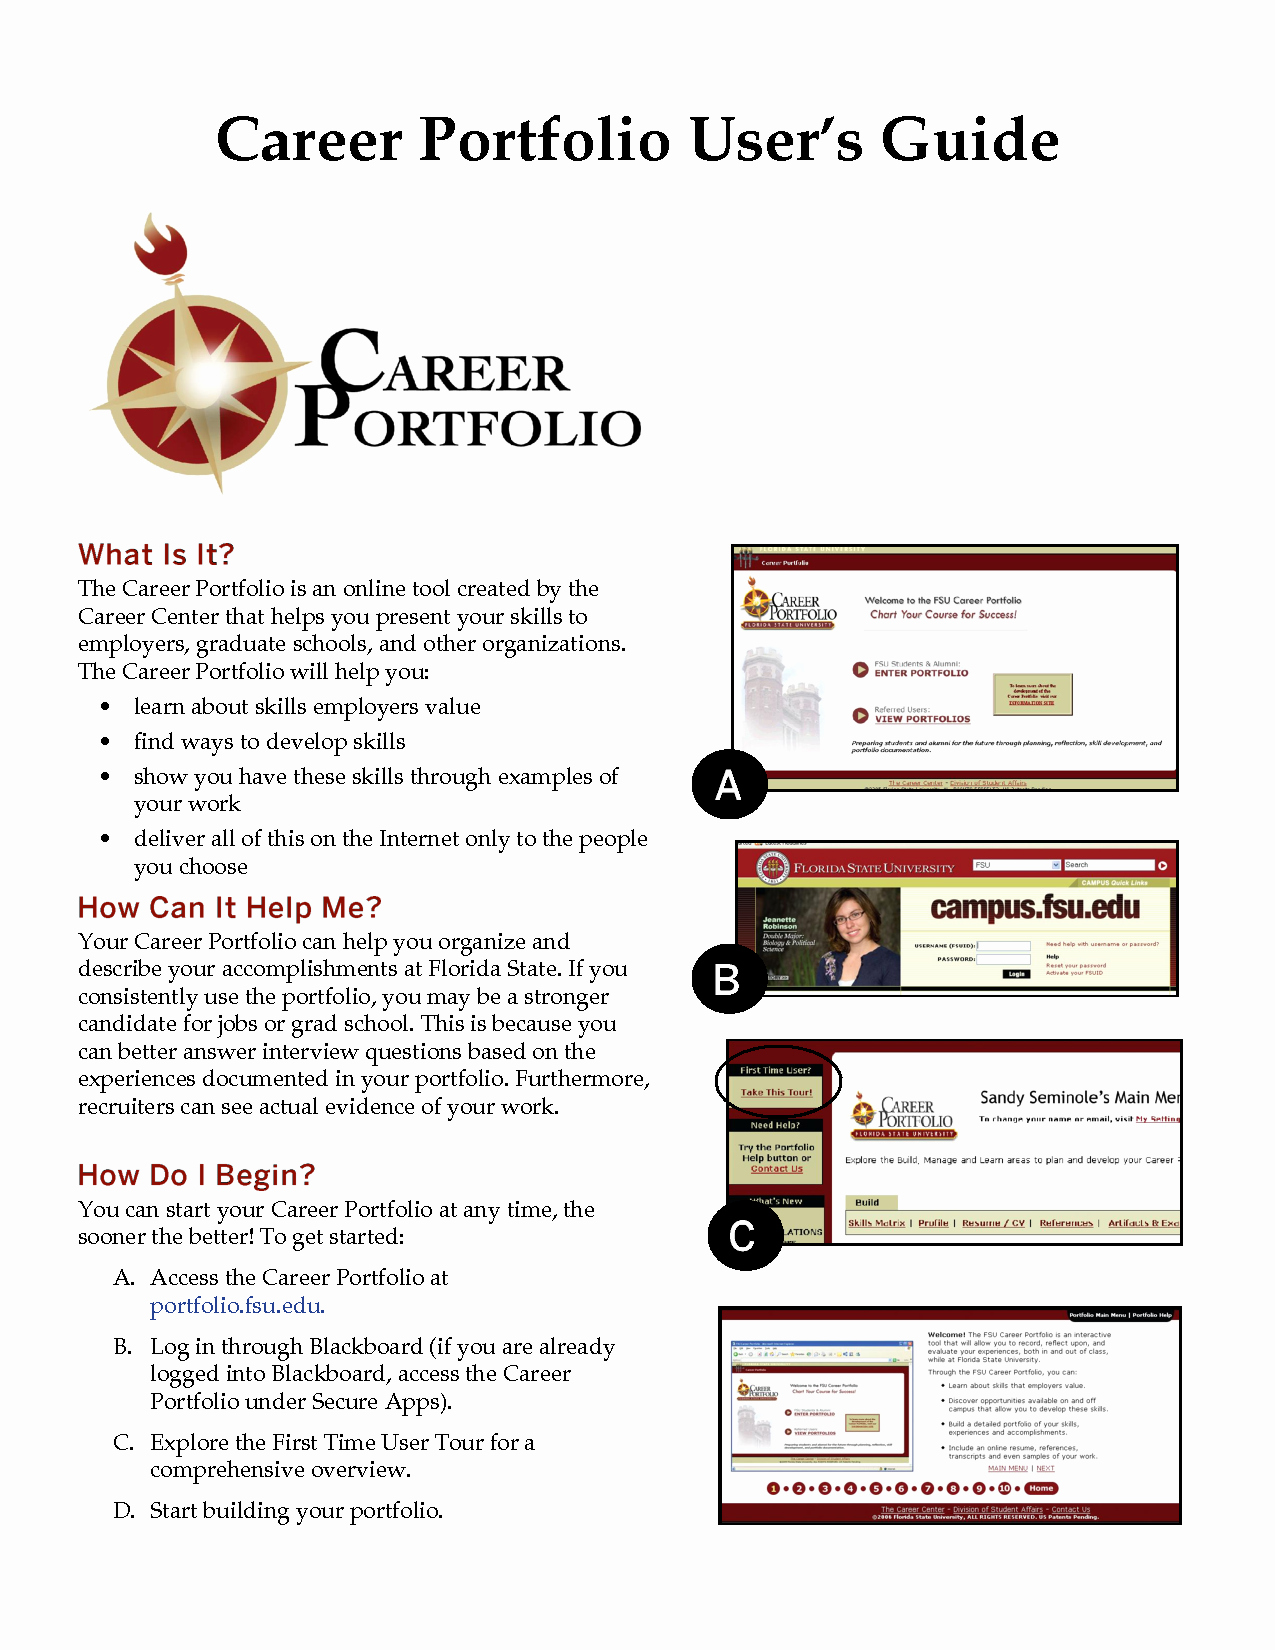 Career Portfolio Template Powerpoint Awesome Best S Of Sample Career Portfolio Powerpoint